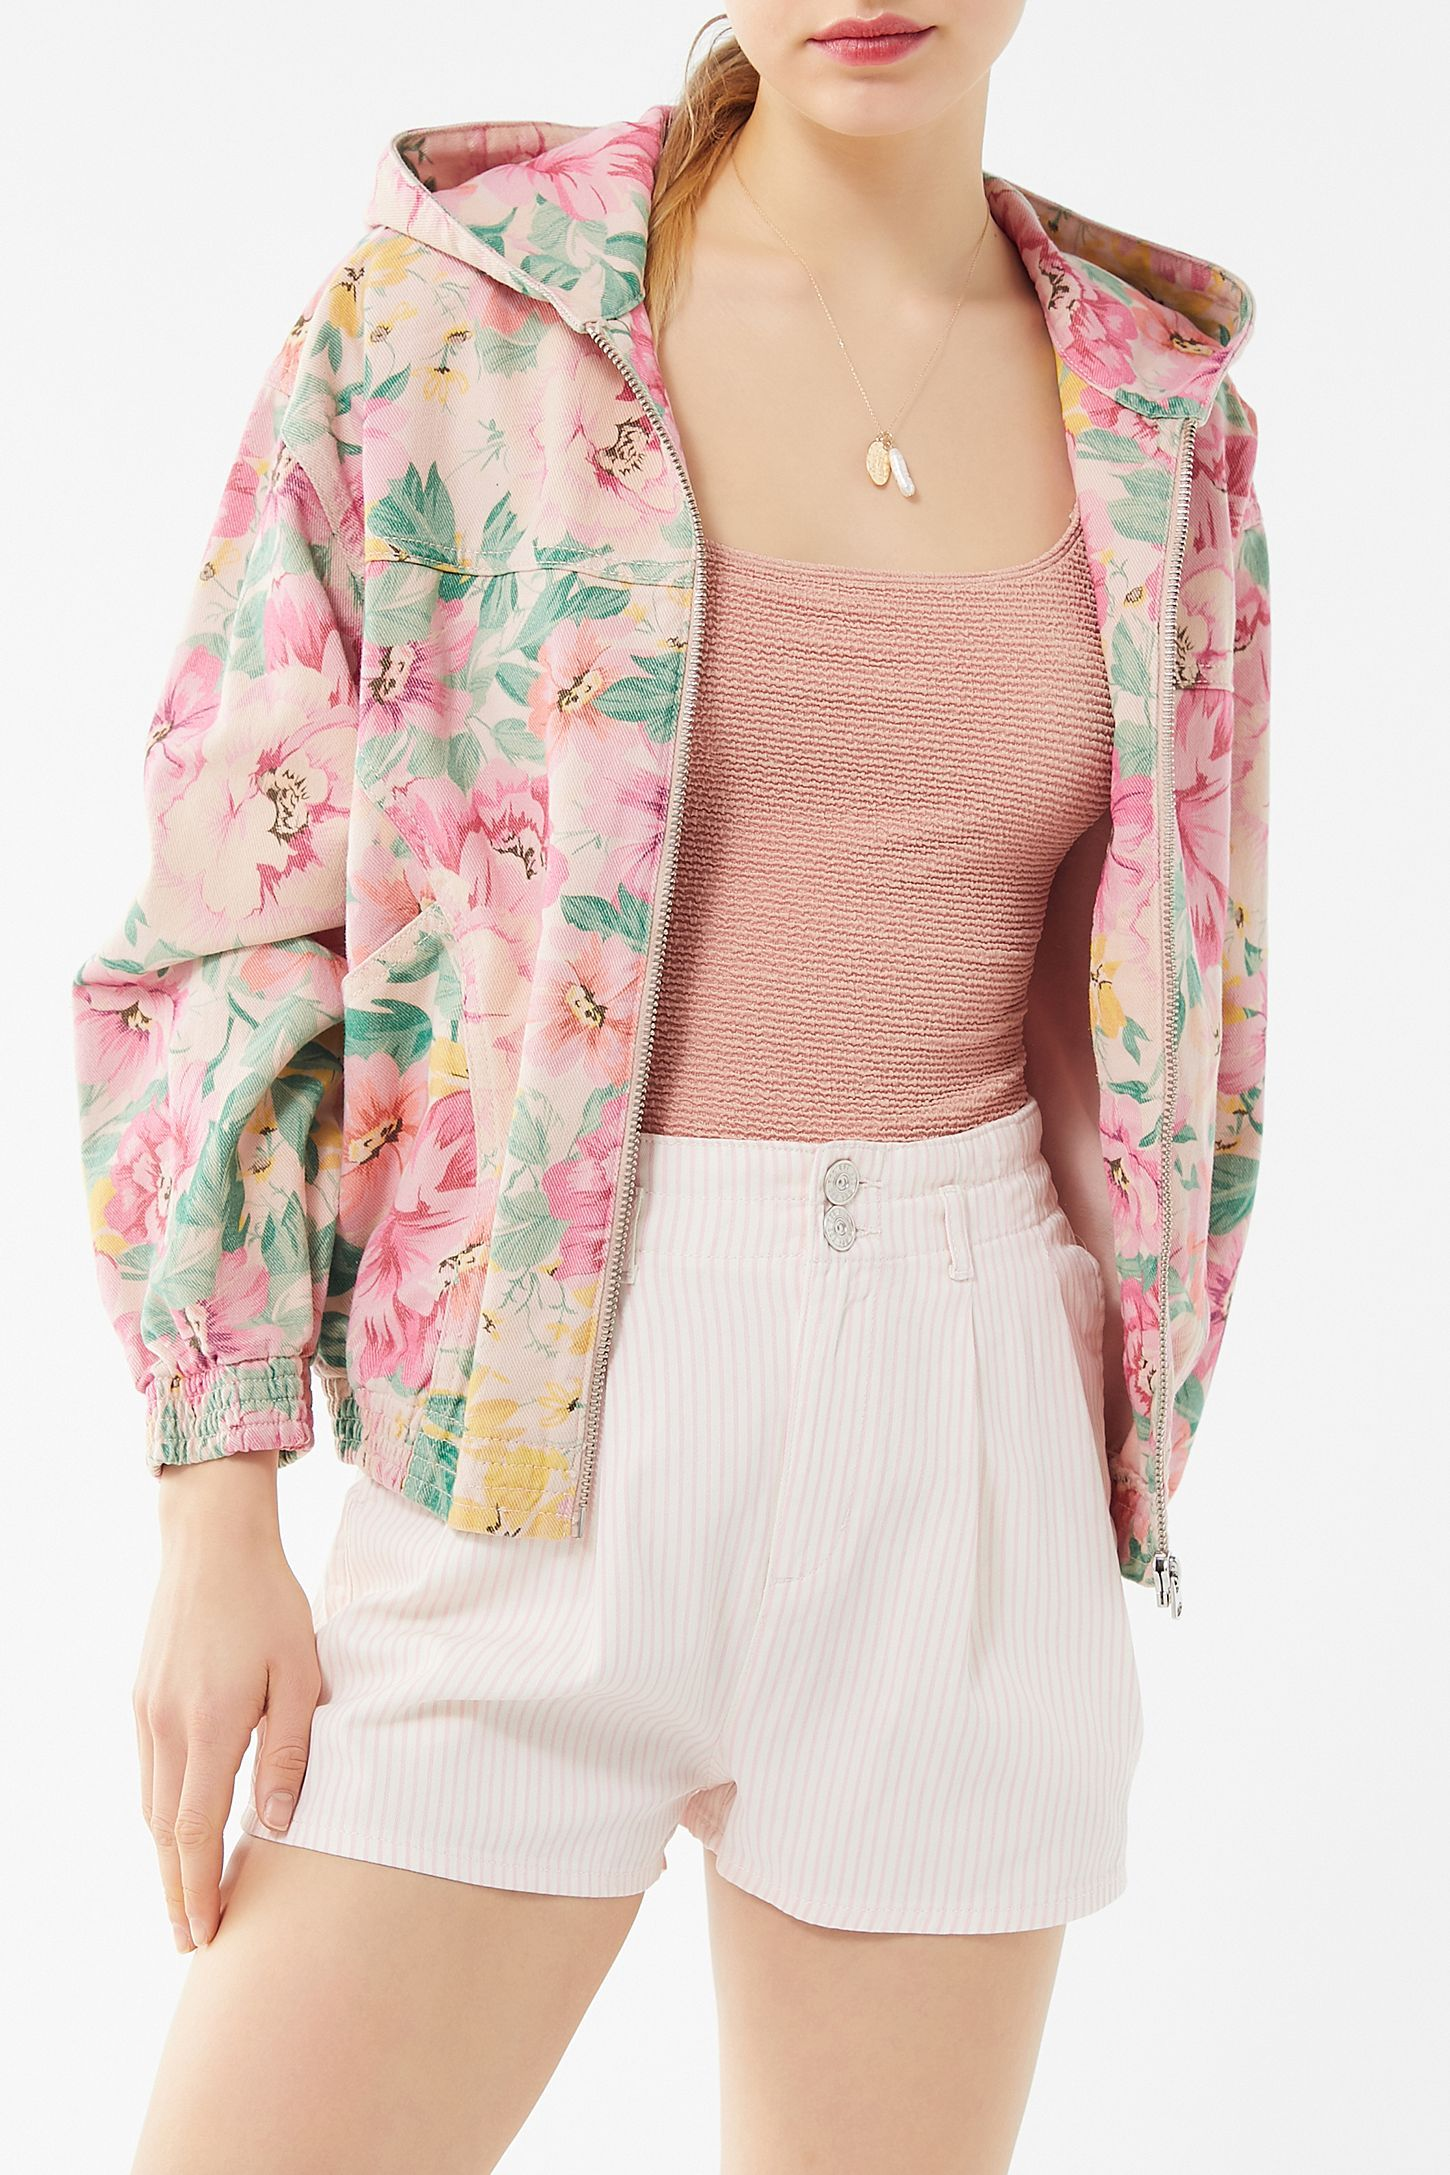 fa4b1c6ab BDG Floral Hooded Bomber Jacket in 2019   SHOPPING   Hooded bomber ...